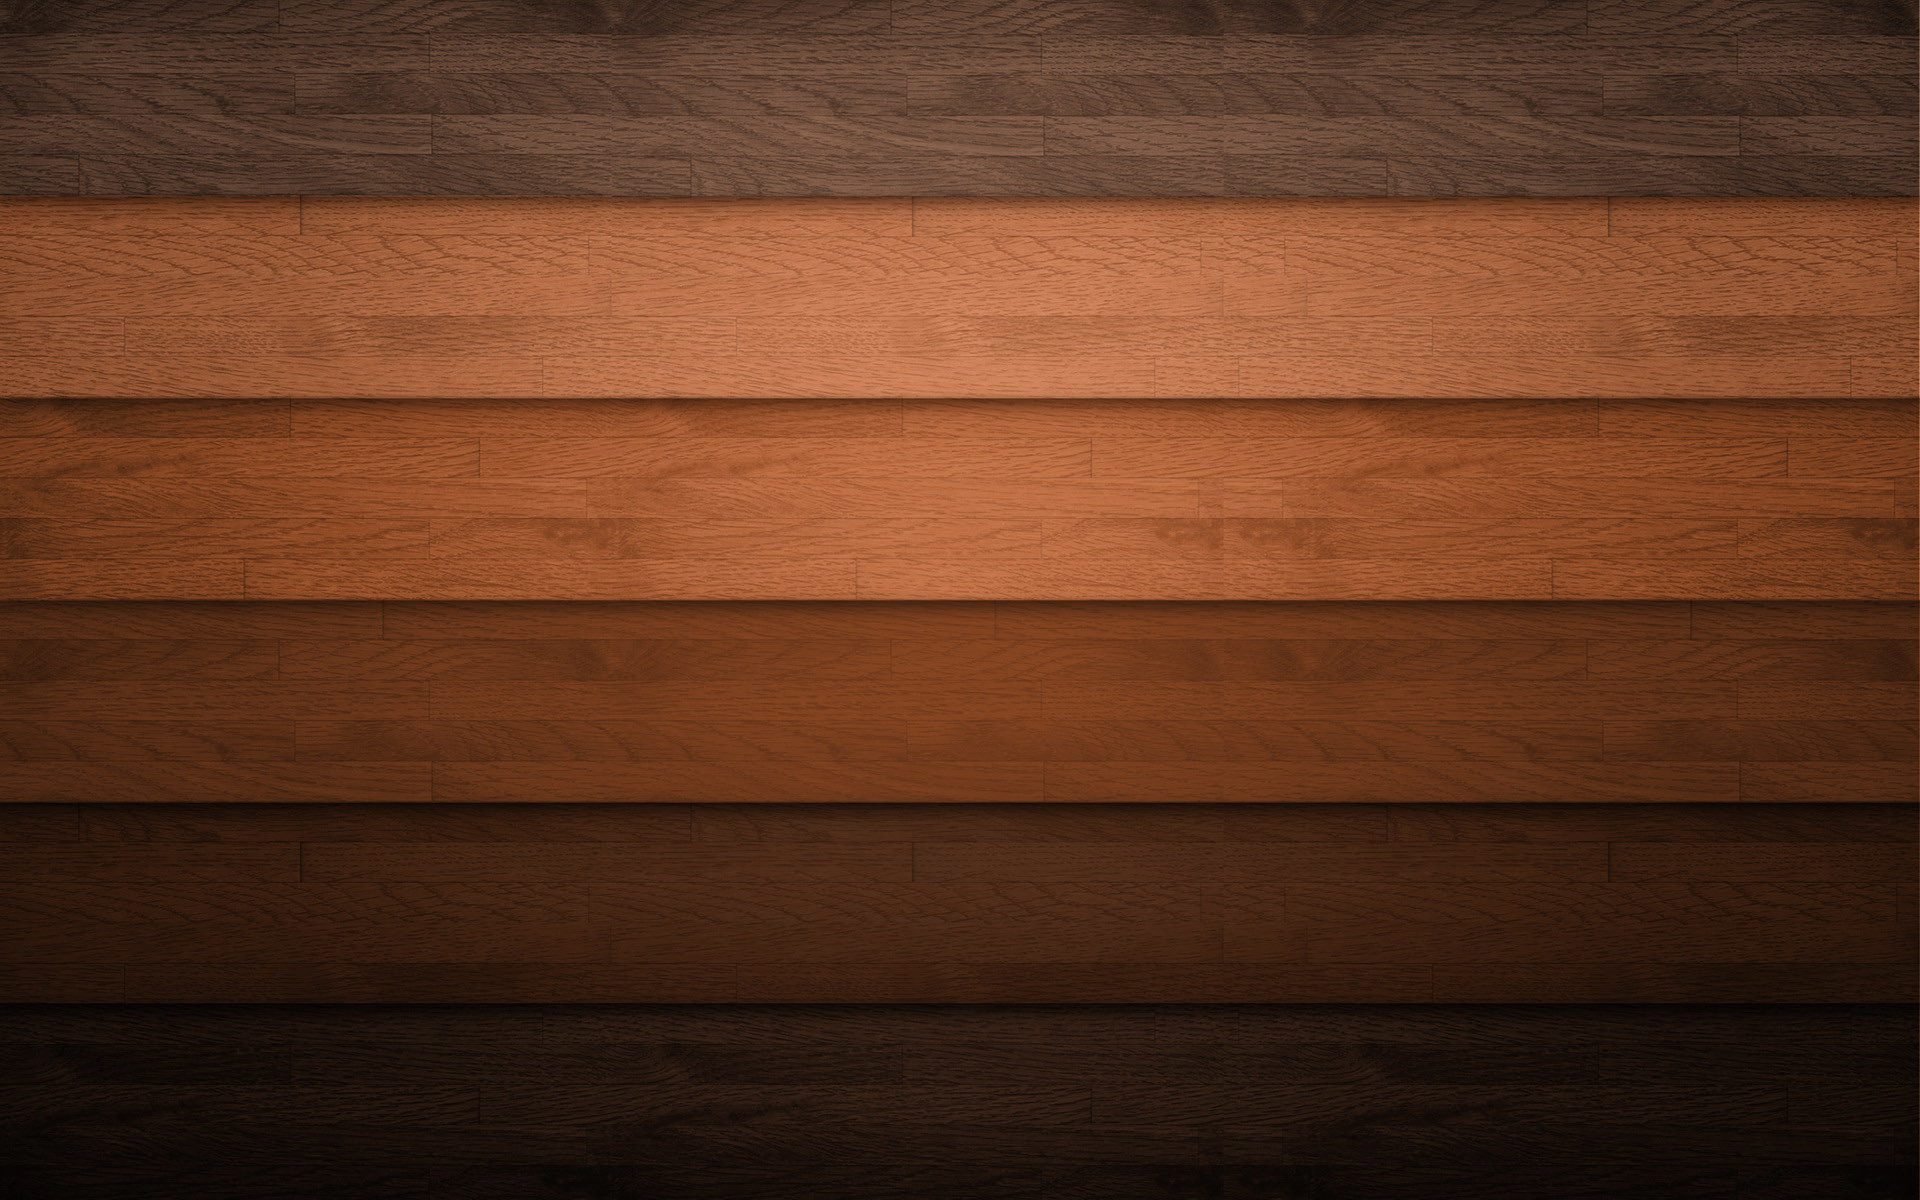 Wooden Wall Wallpaper Cool Picture #m02oma px 423.51 KB Abstract  Wooden Wall